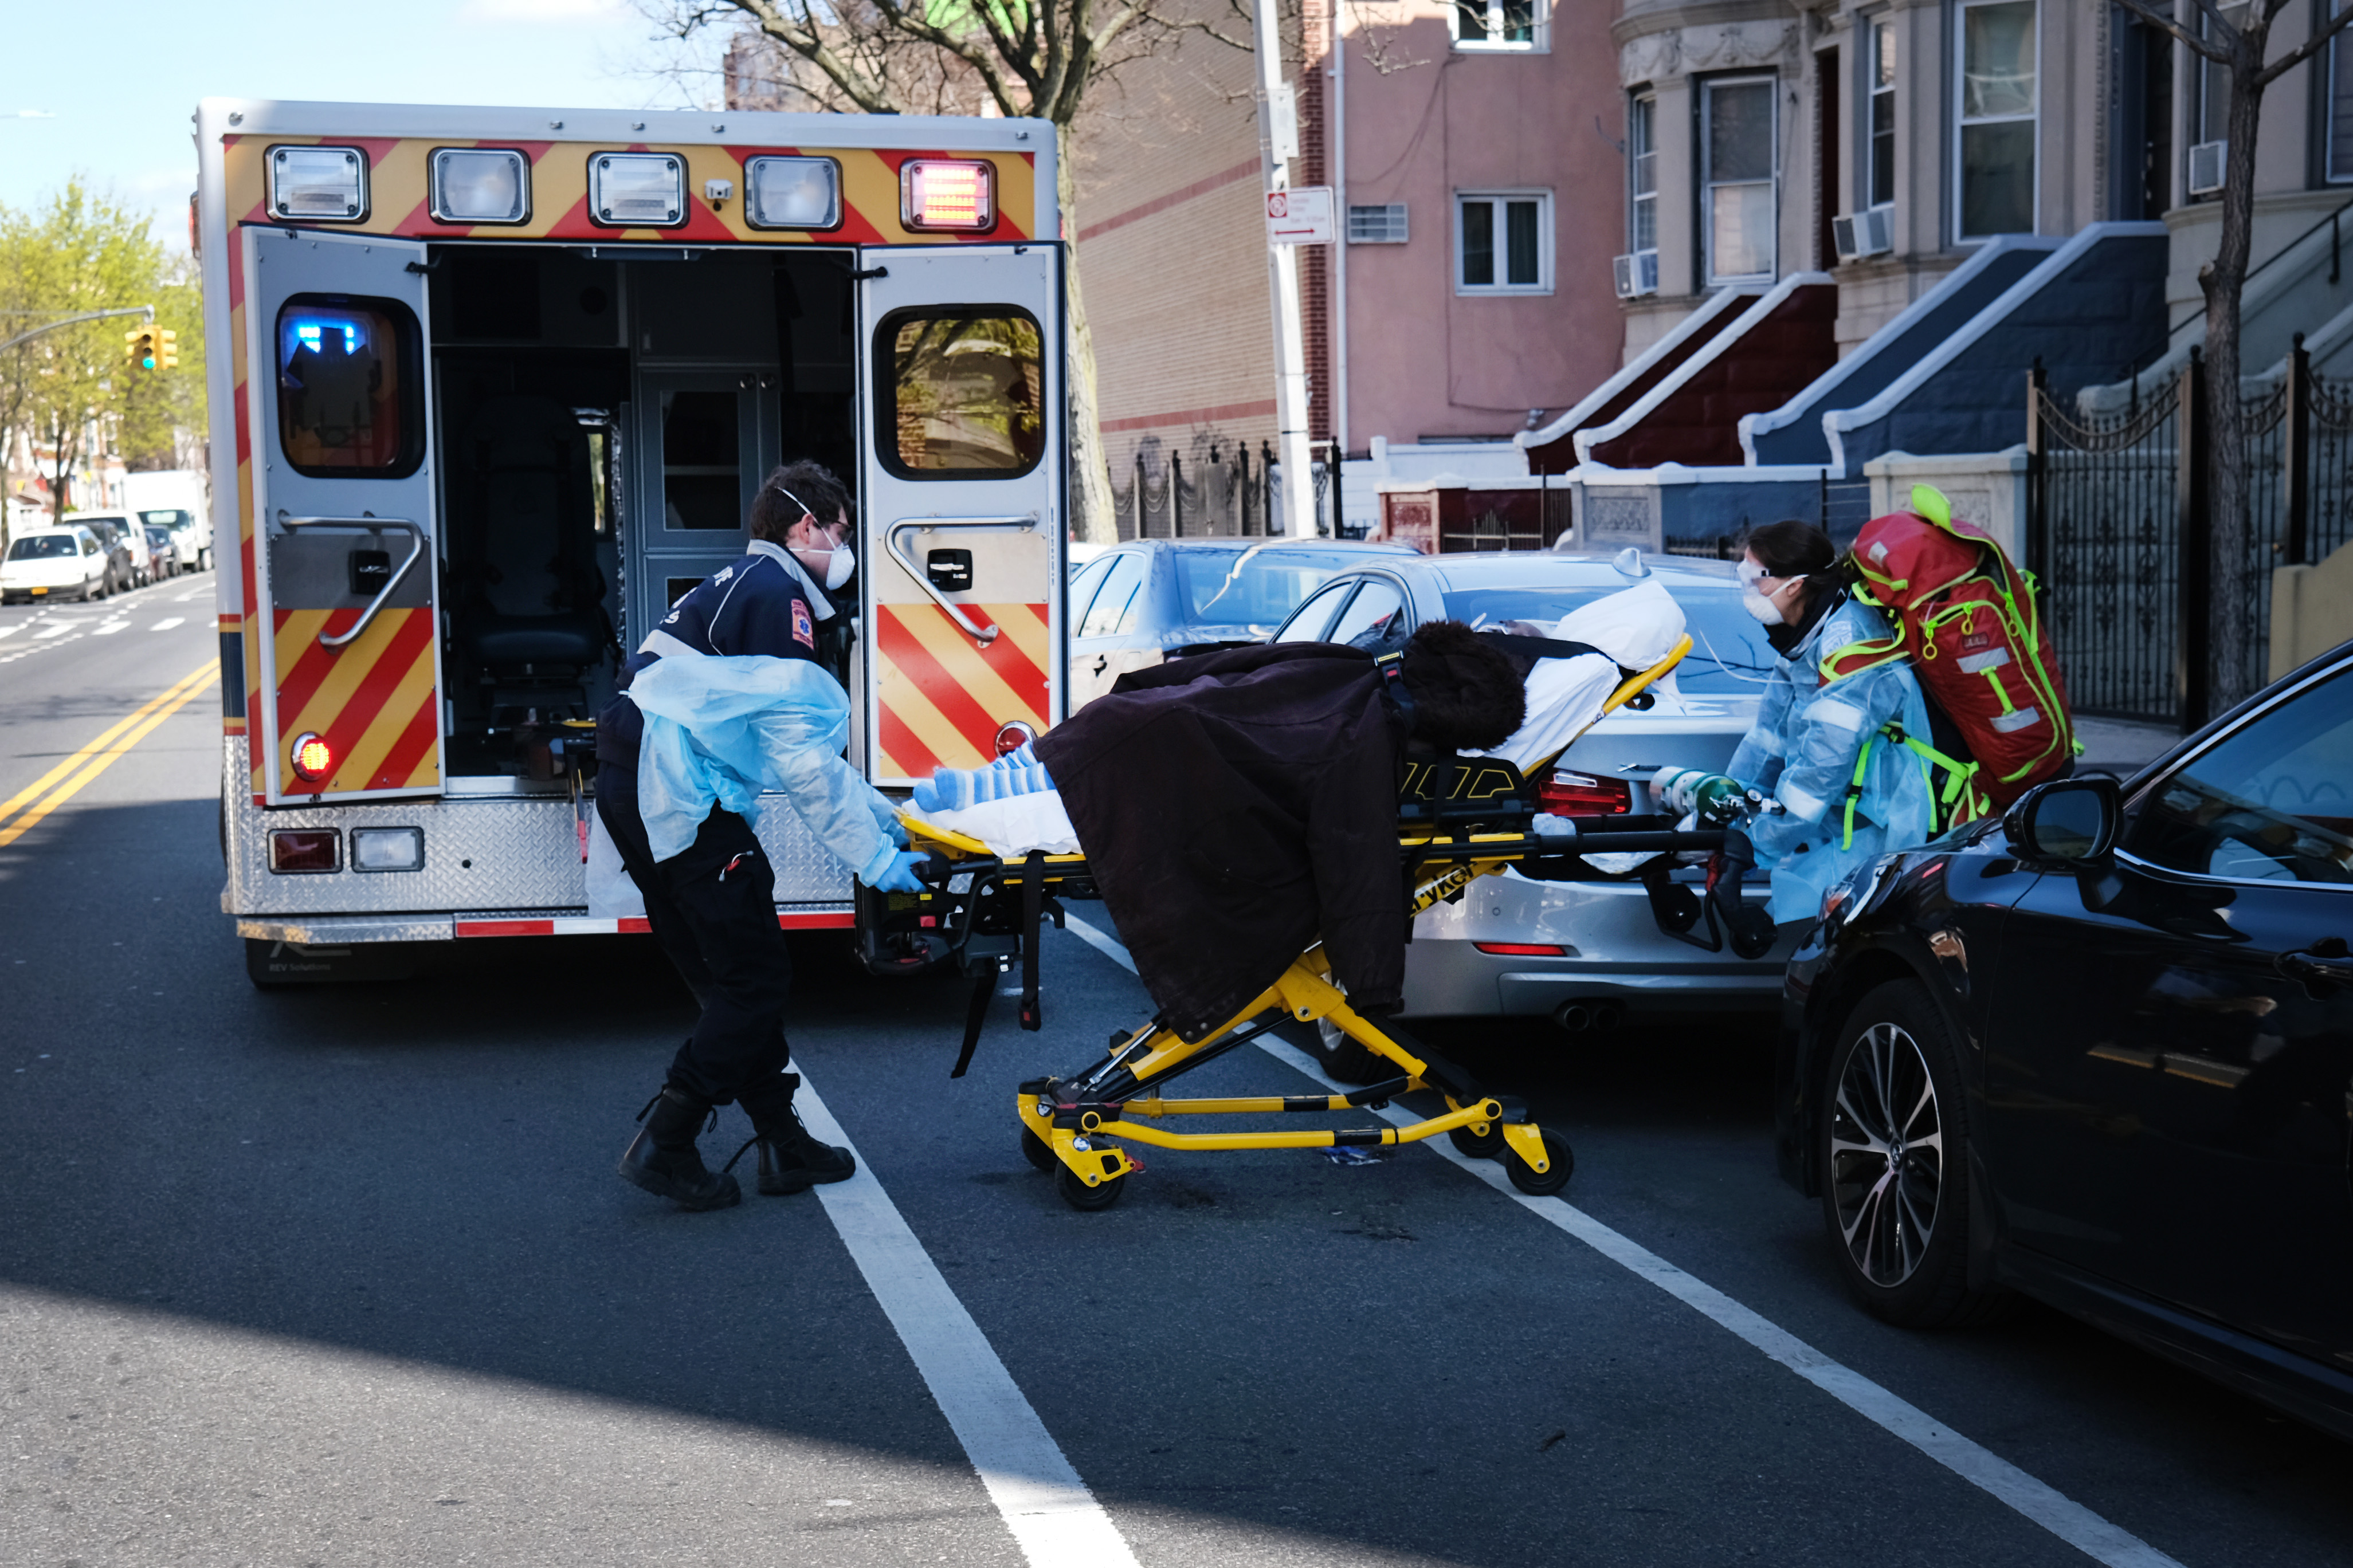 Health workers wheel a patient to an ambulance in Brooklyn, New York, on April 11.